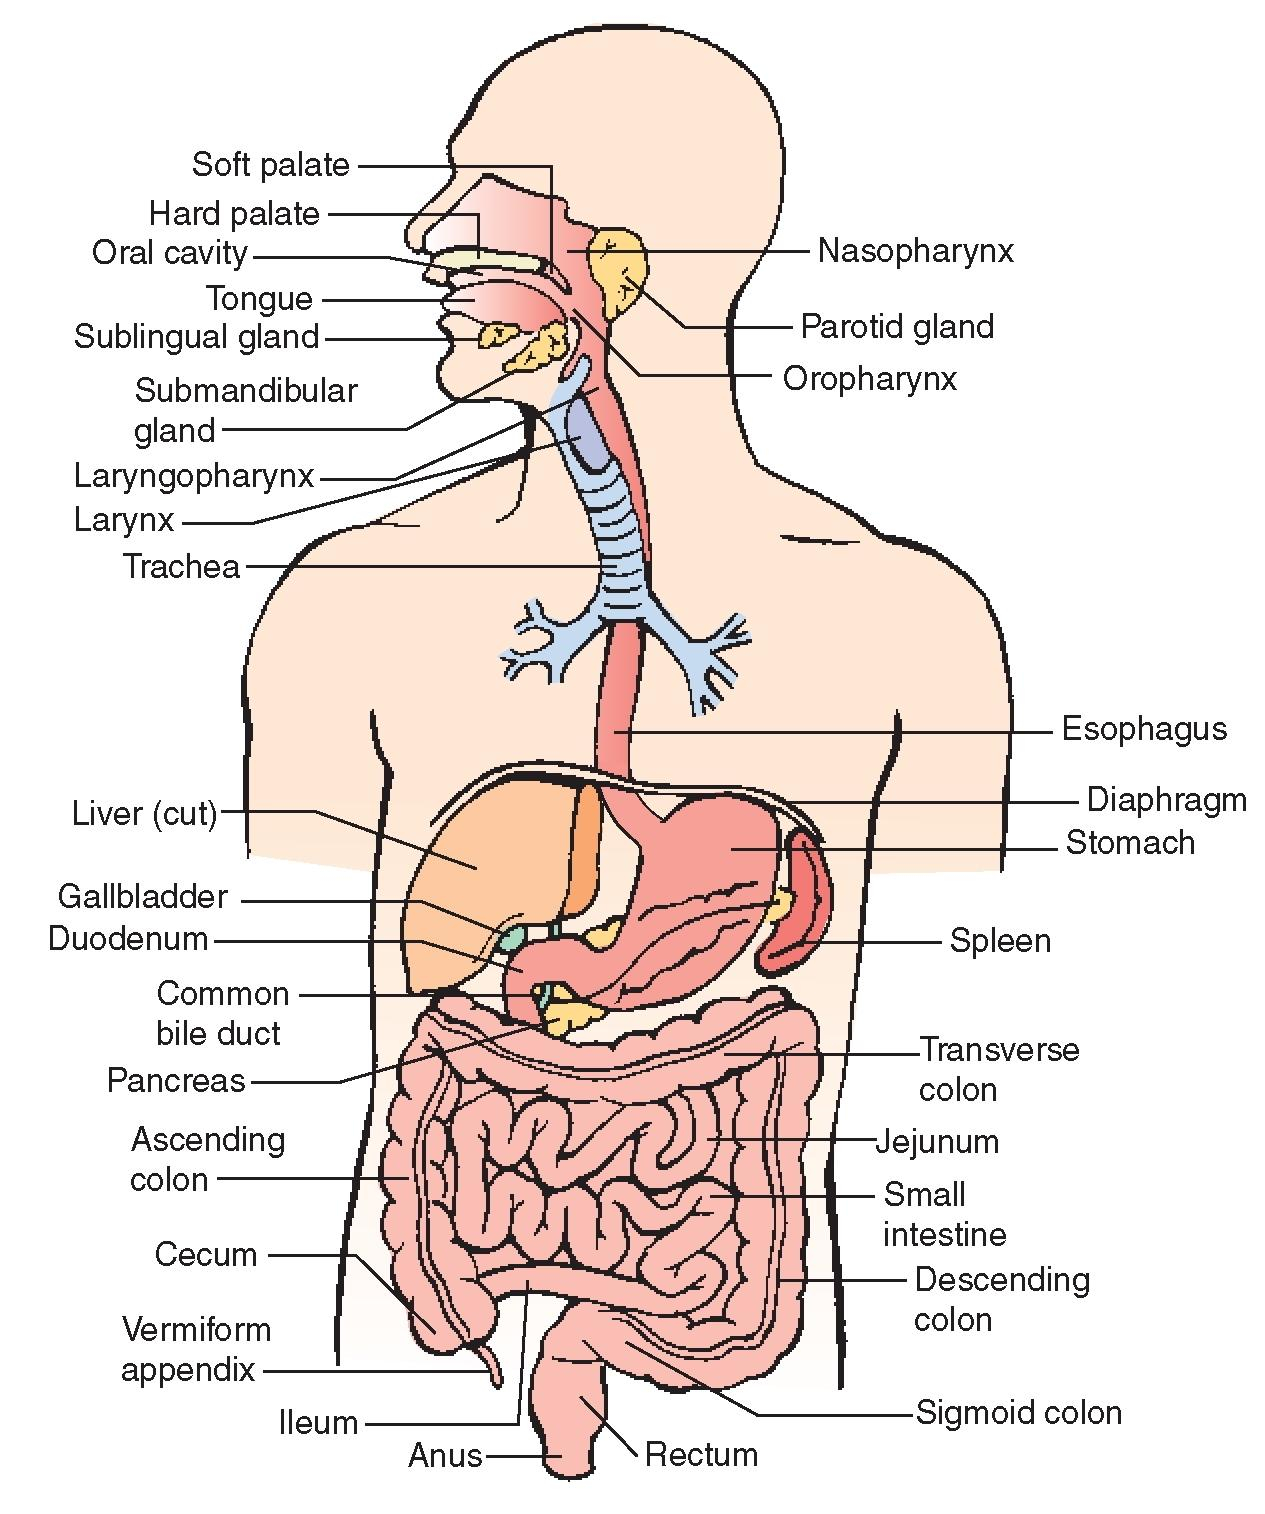 Diagram Of The Digestive System Sketch Of Human Digestive System At Paintingvalley Explore